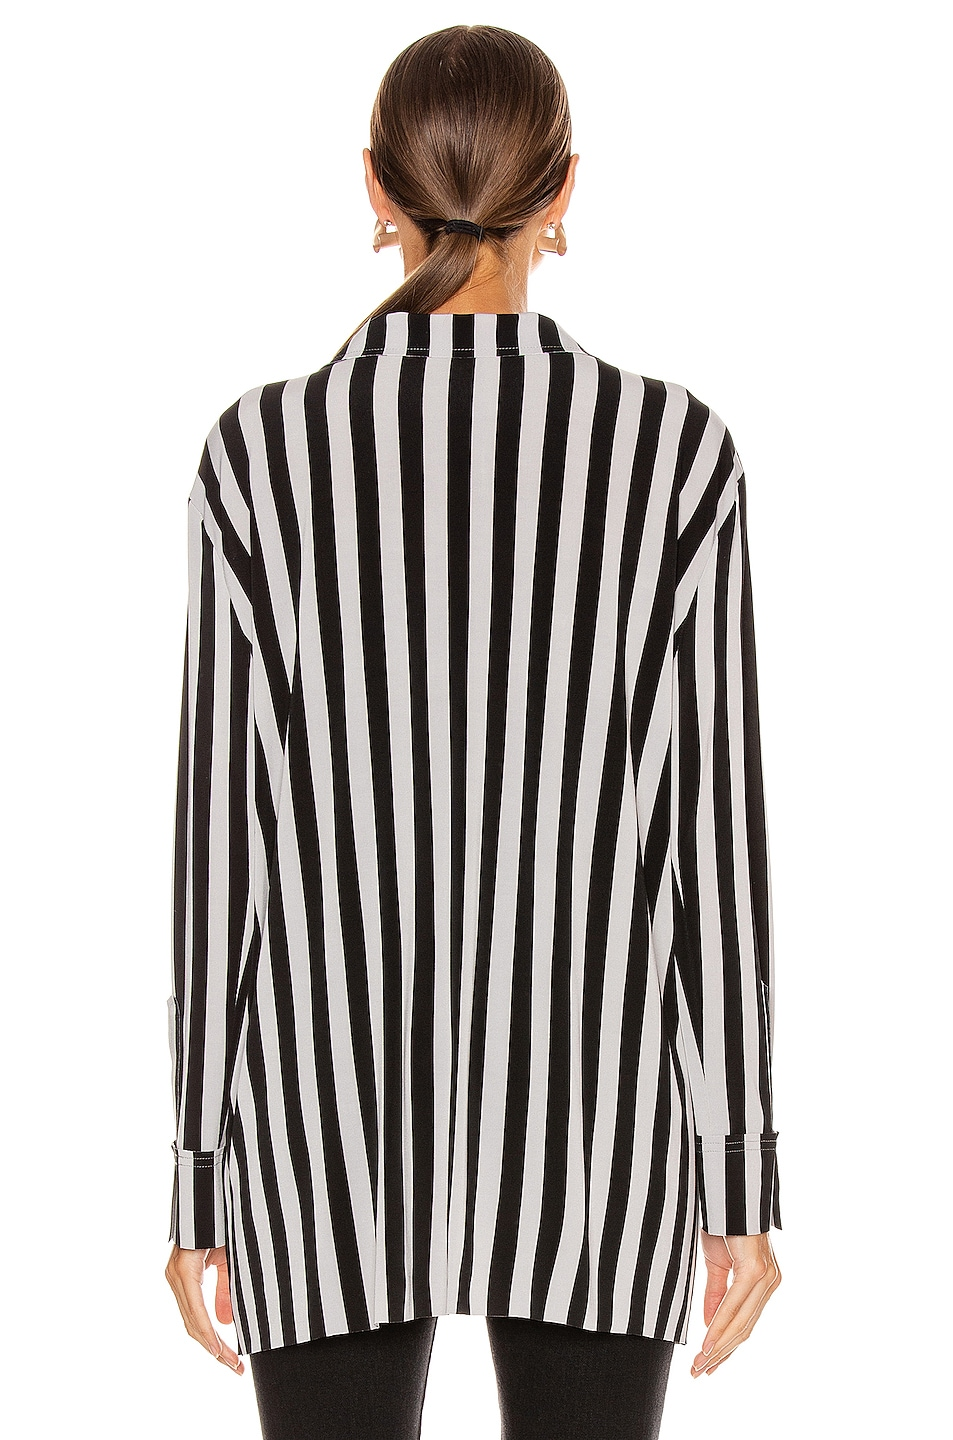 Image 3 of Norma Kamali Boyfriend NK Top in Grey & Black Stripe